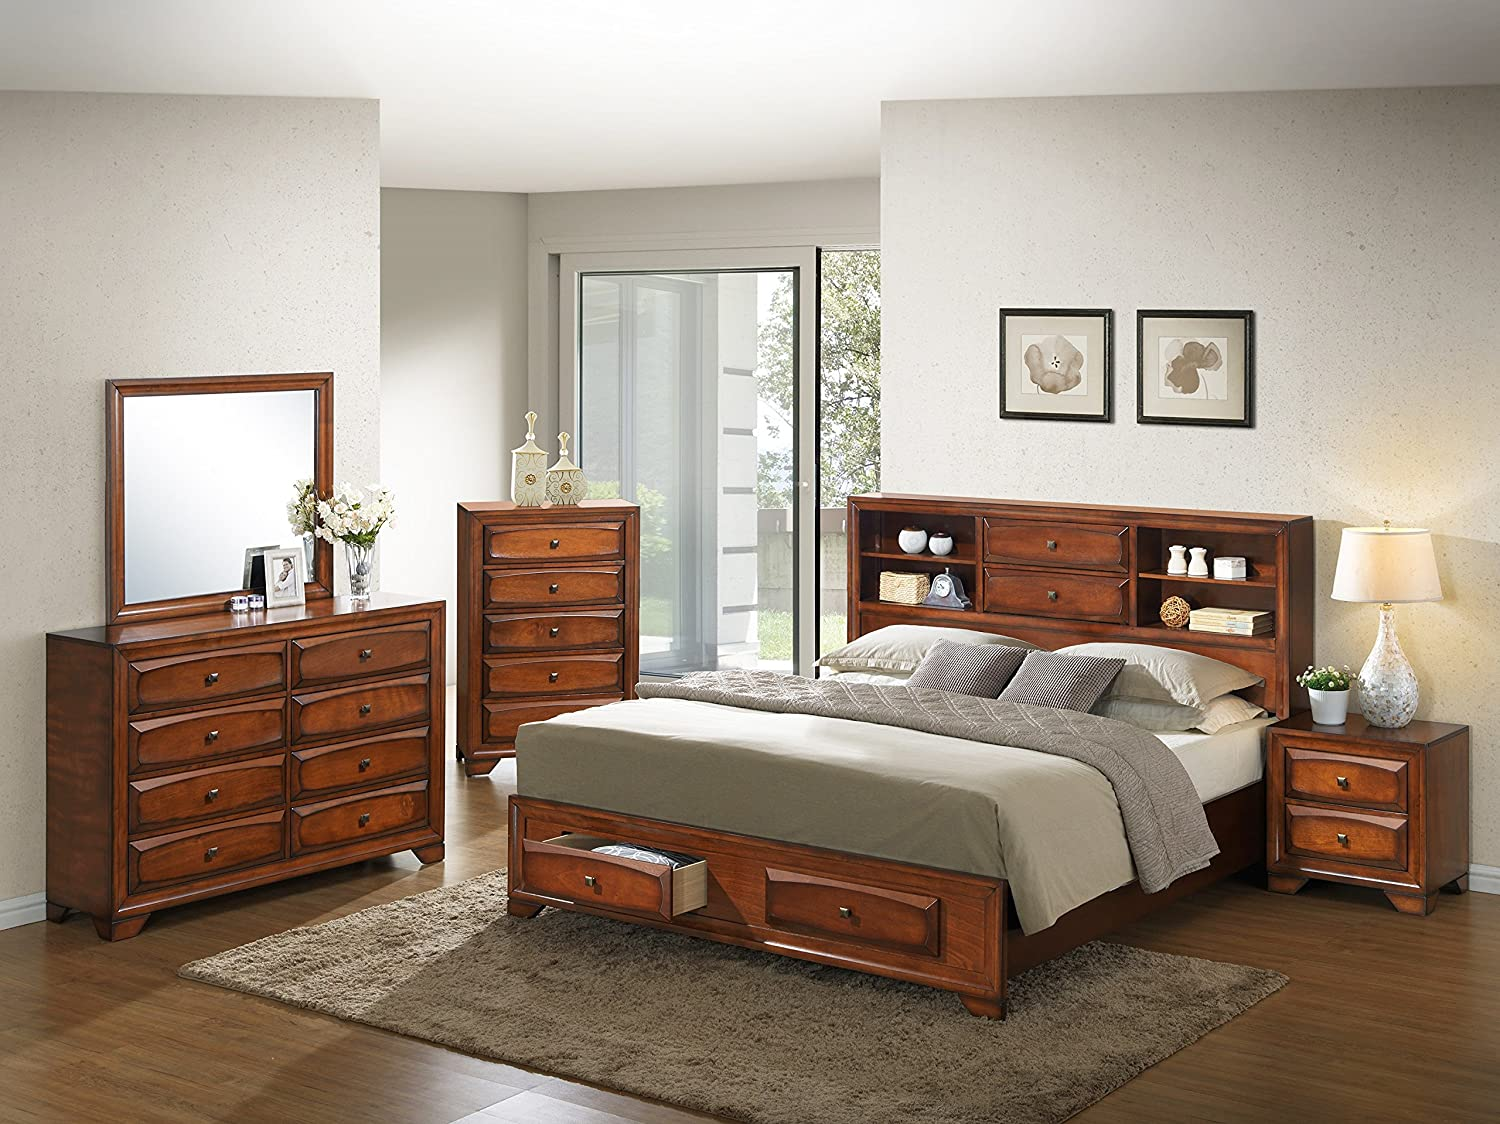 Roundhill Furniture Asger Antique Oak Finish Wood Bed Room Set - Queen Storage Bed - Dresser - Mirror - Night Stand